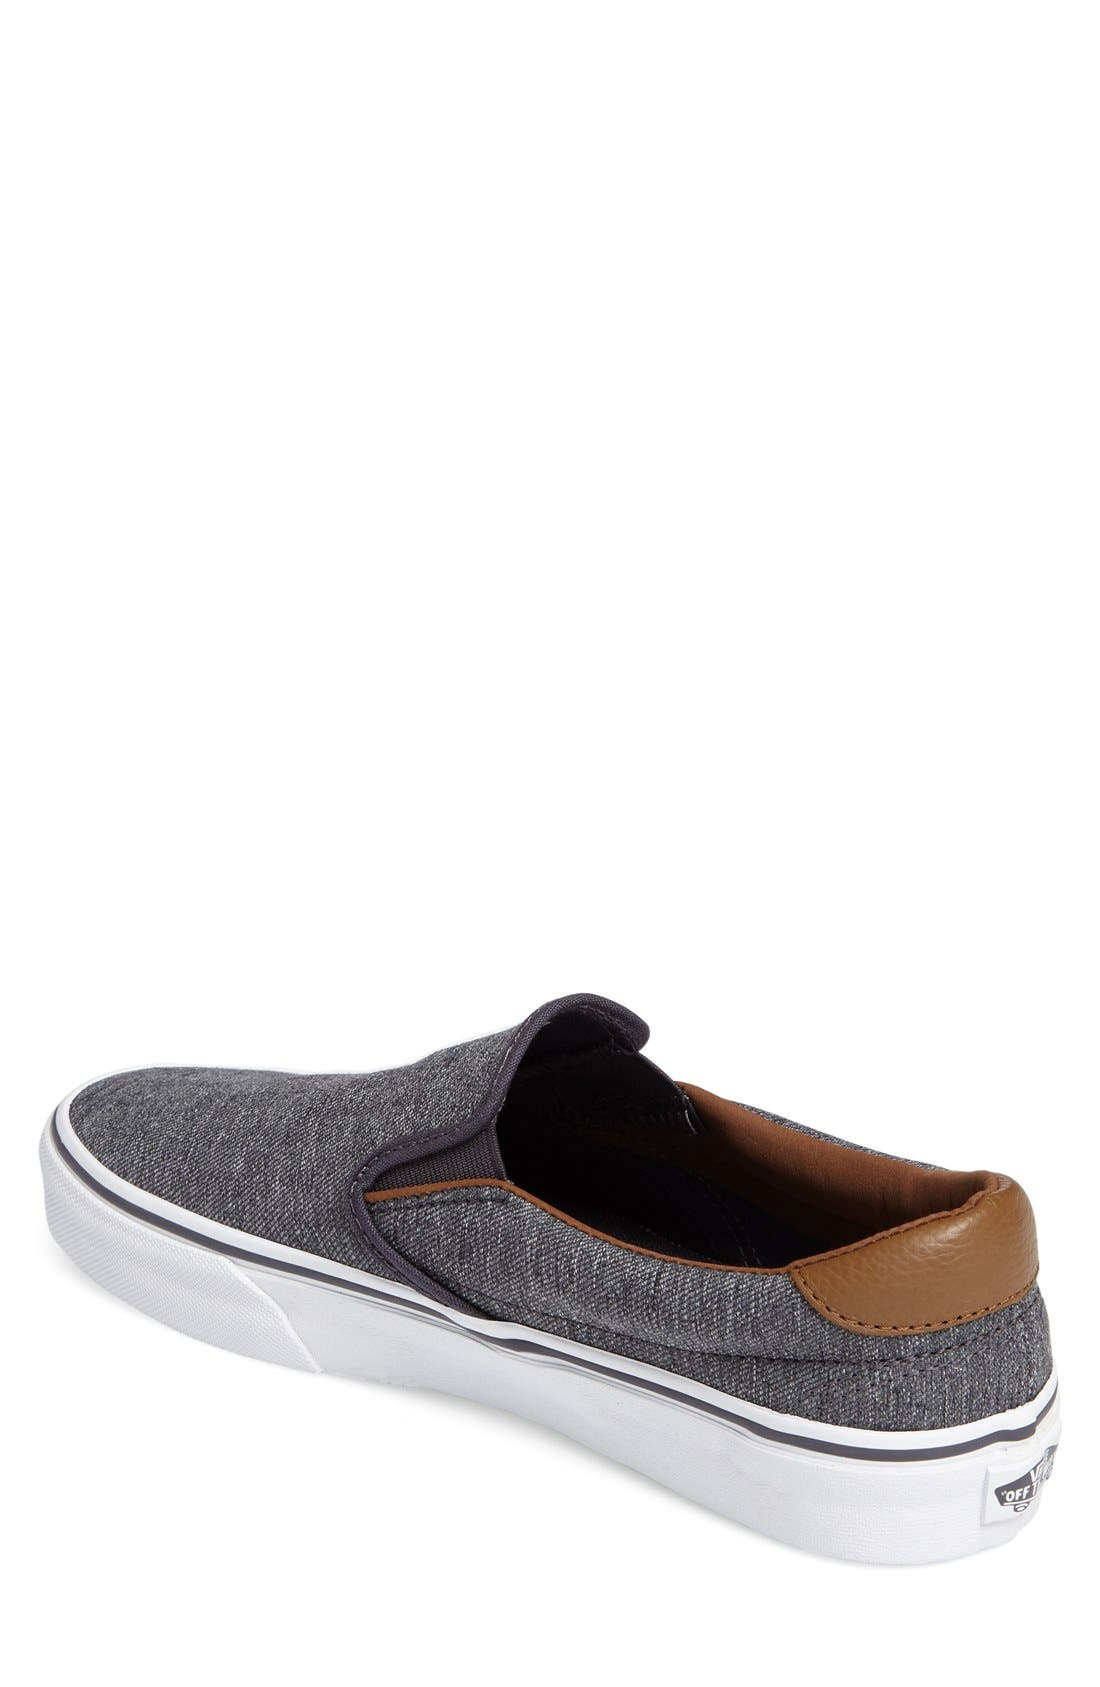 ,                             59 Classic Slip-On Sneaker,                             Alternate thumbnail 33, color,                             400